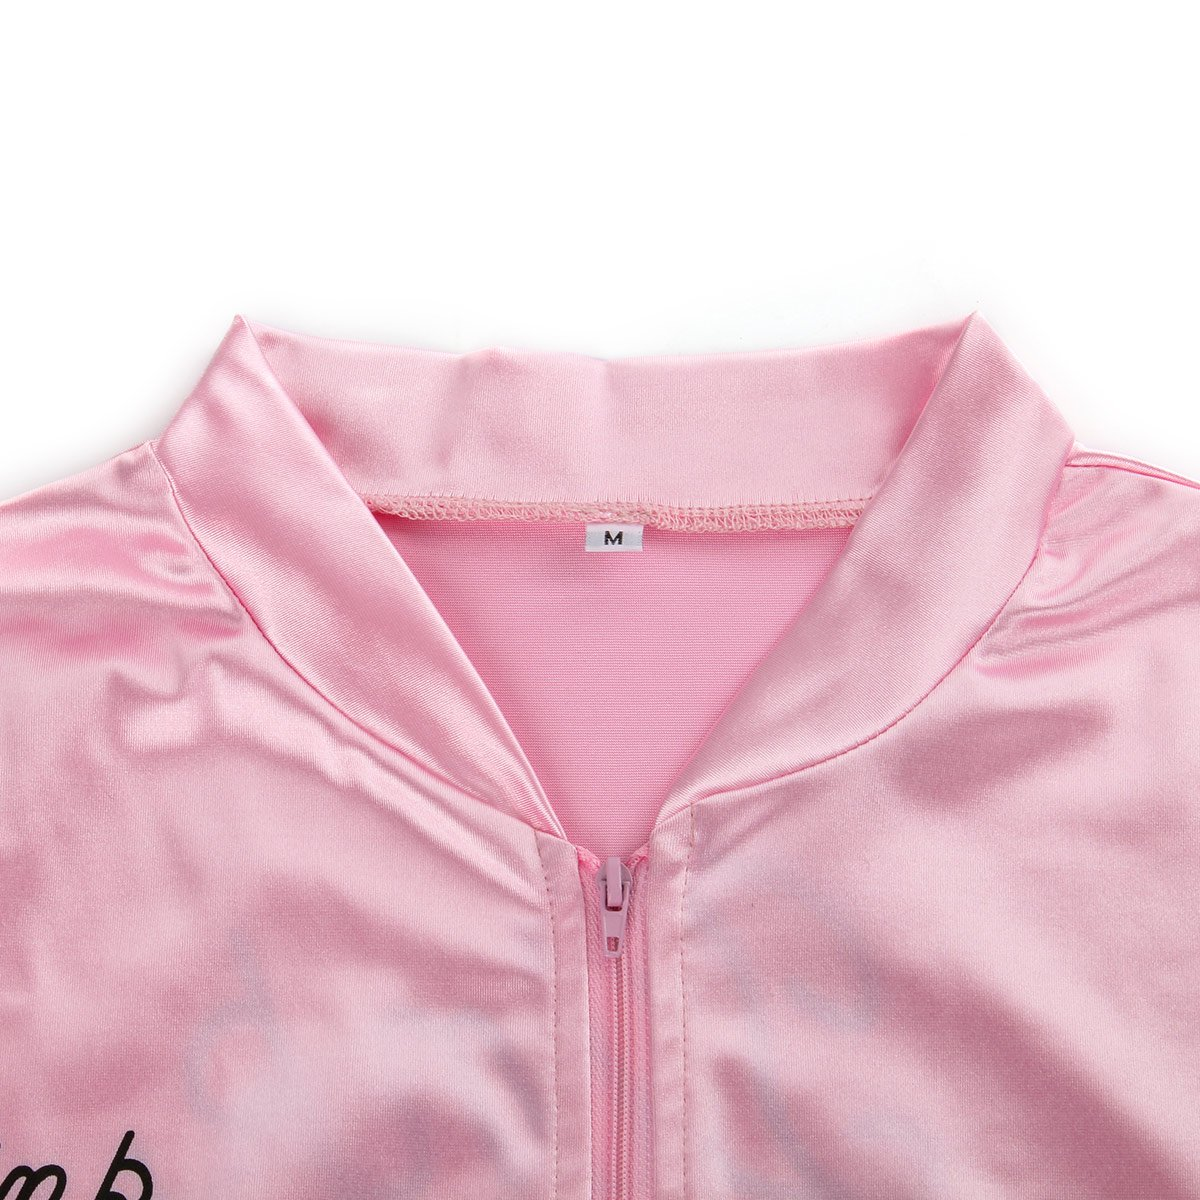 COSFLY Ladies 50S Grease T Bird Danny Pink Satin Jacket Halloween Cosplay Costume with Neck Scarf (X-Large) by COSFLY (Image #6)